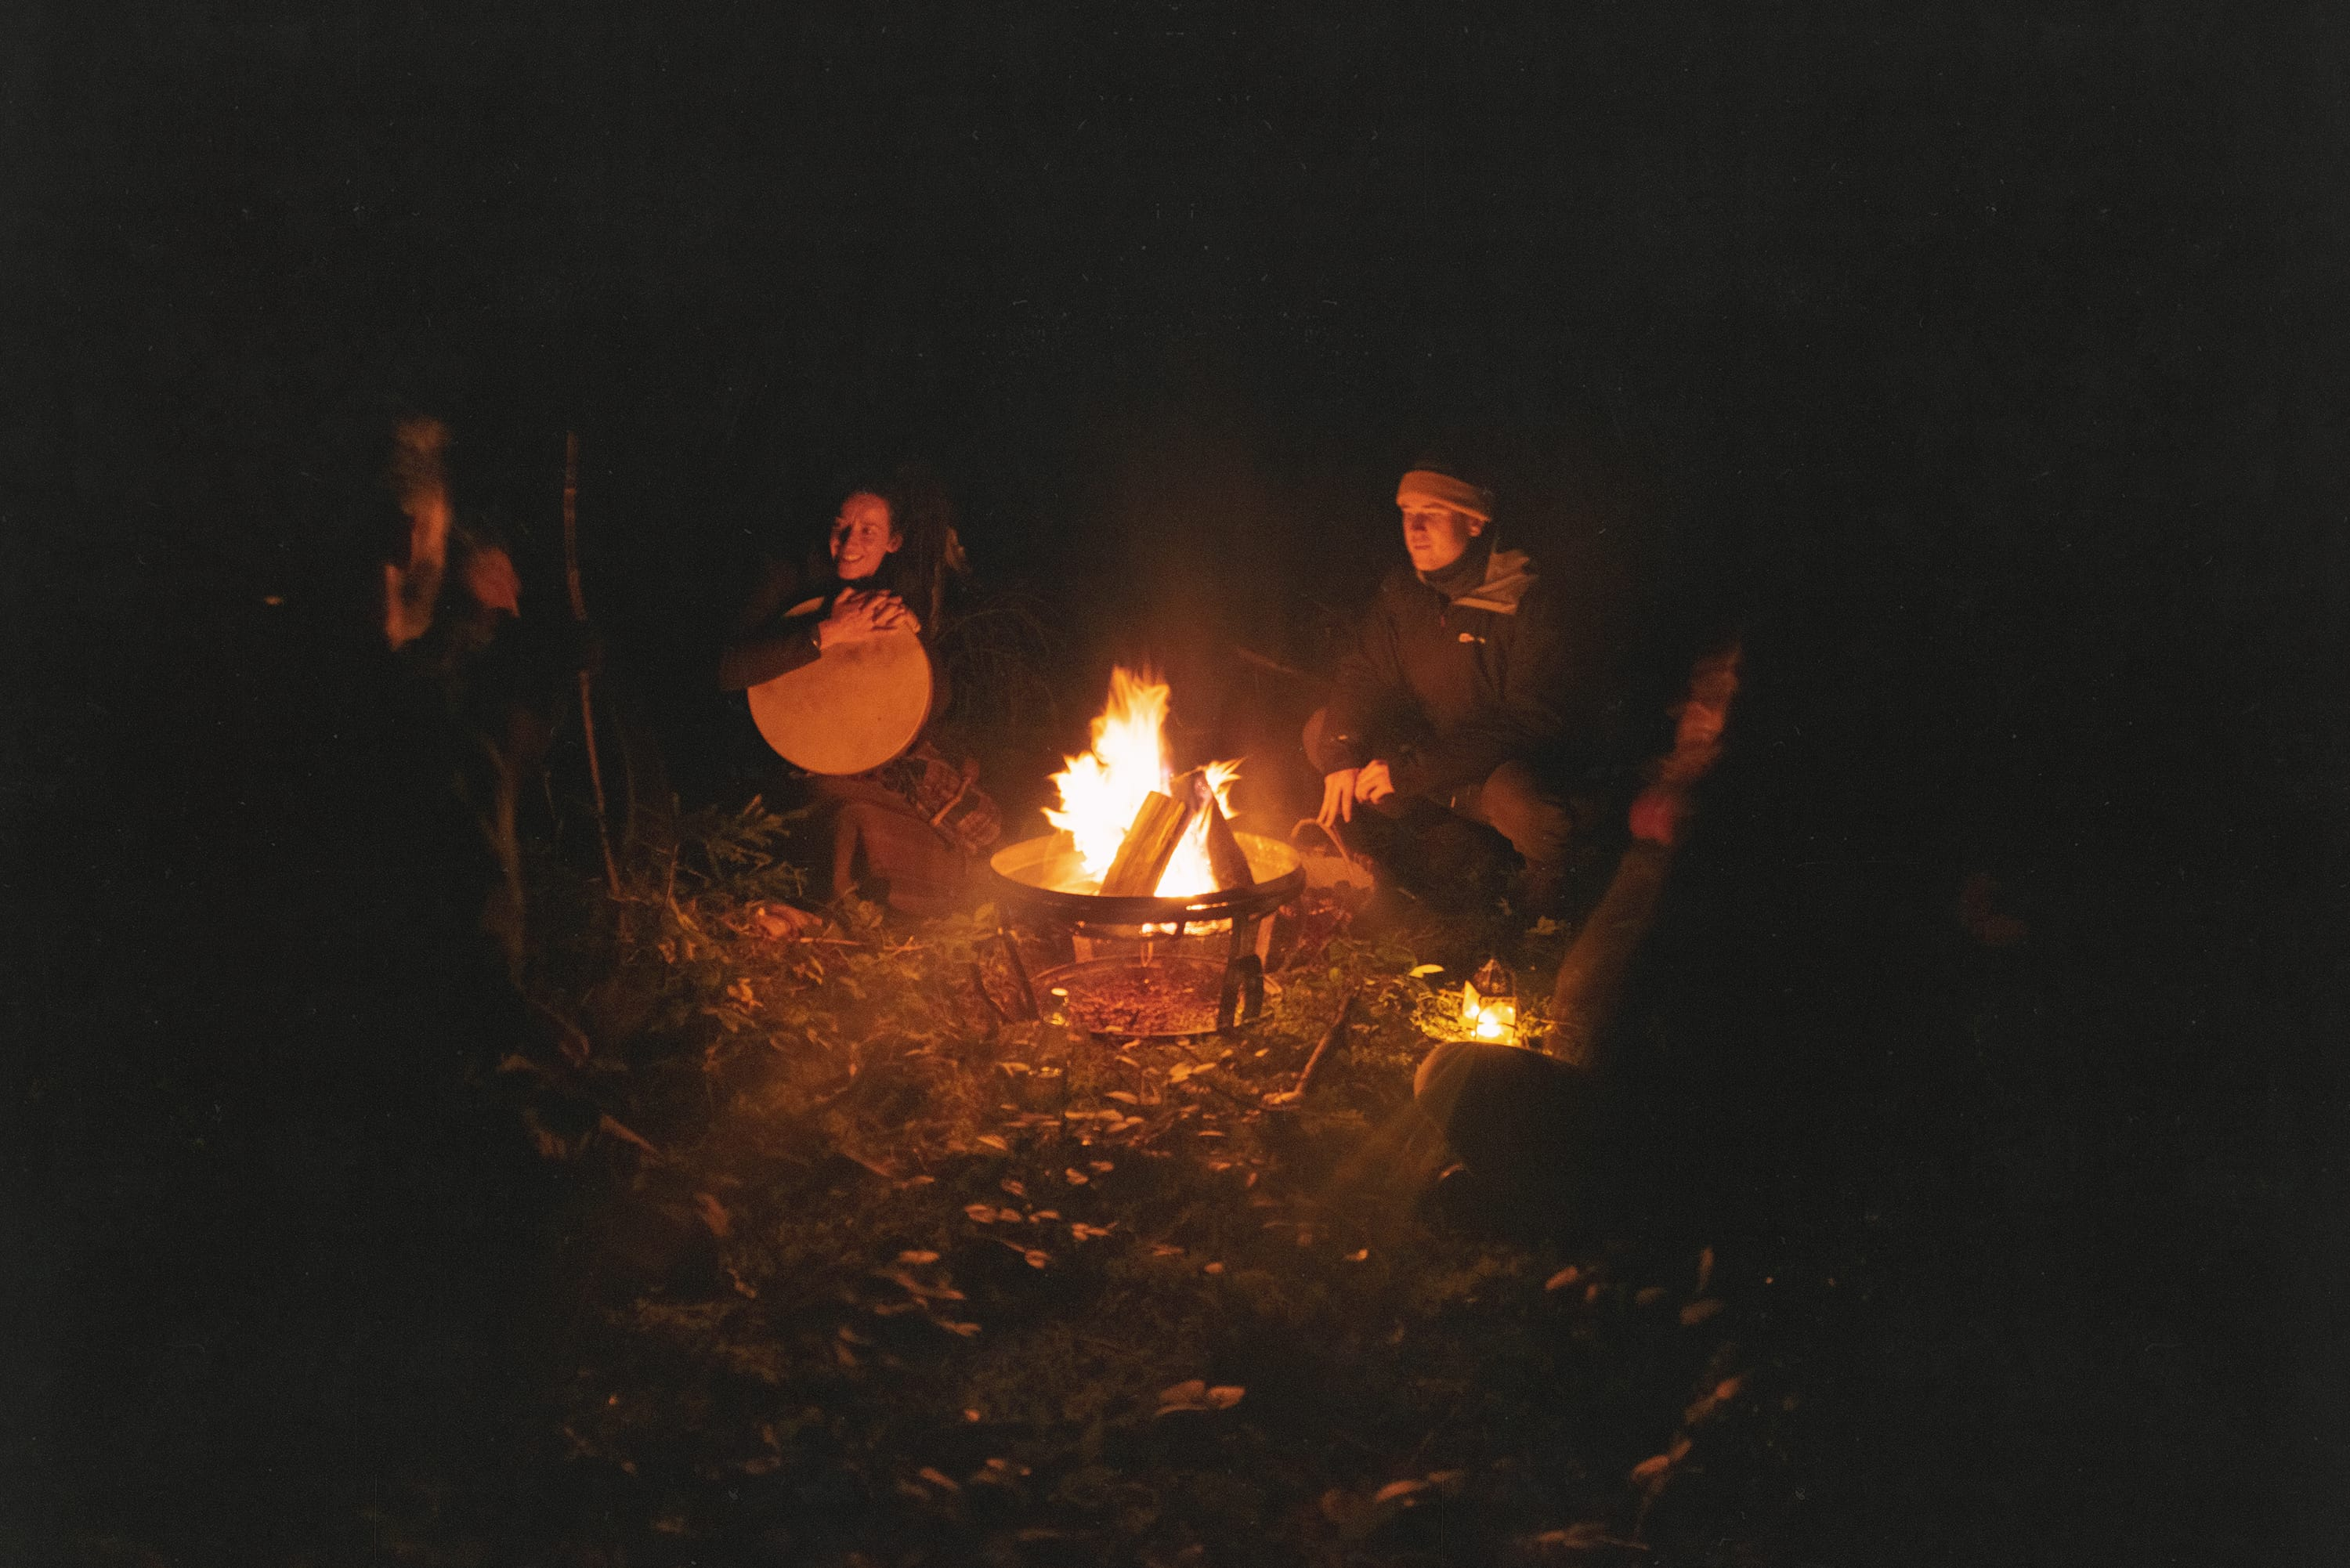 Group of people sat around a fire in the dark